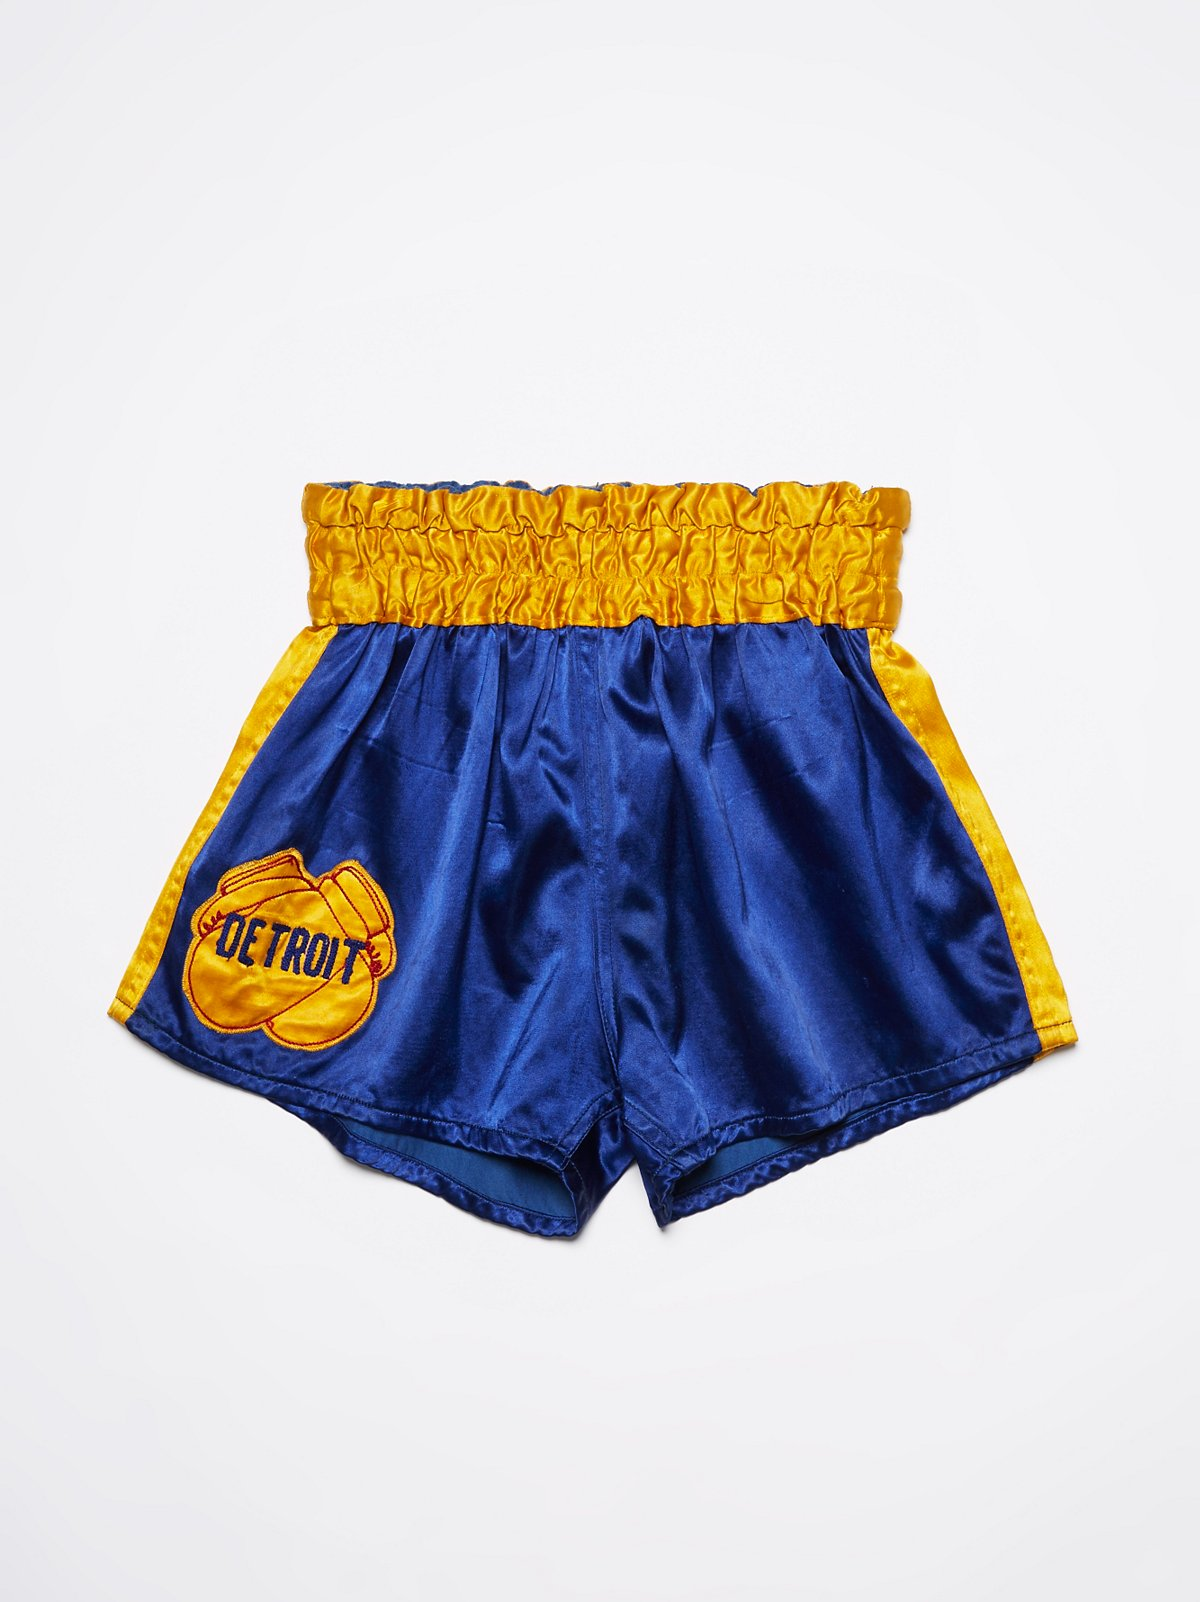 Vintage 1970s Silk Boxing Shorts